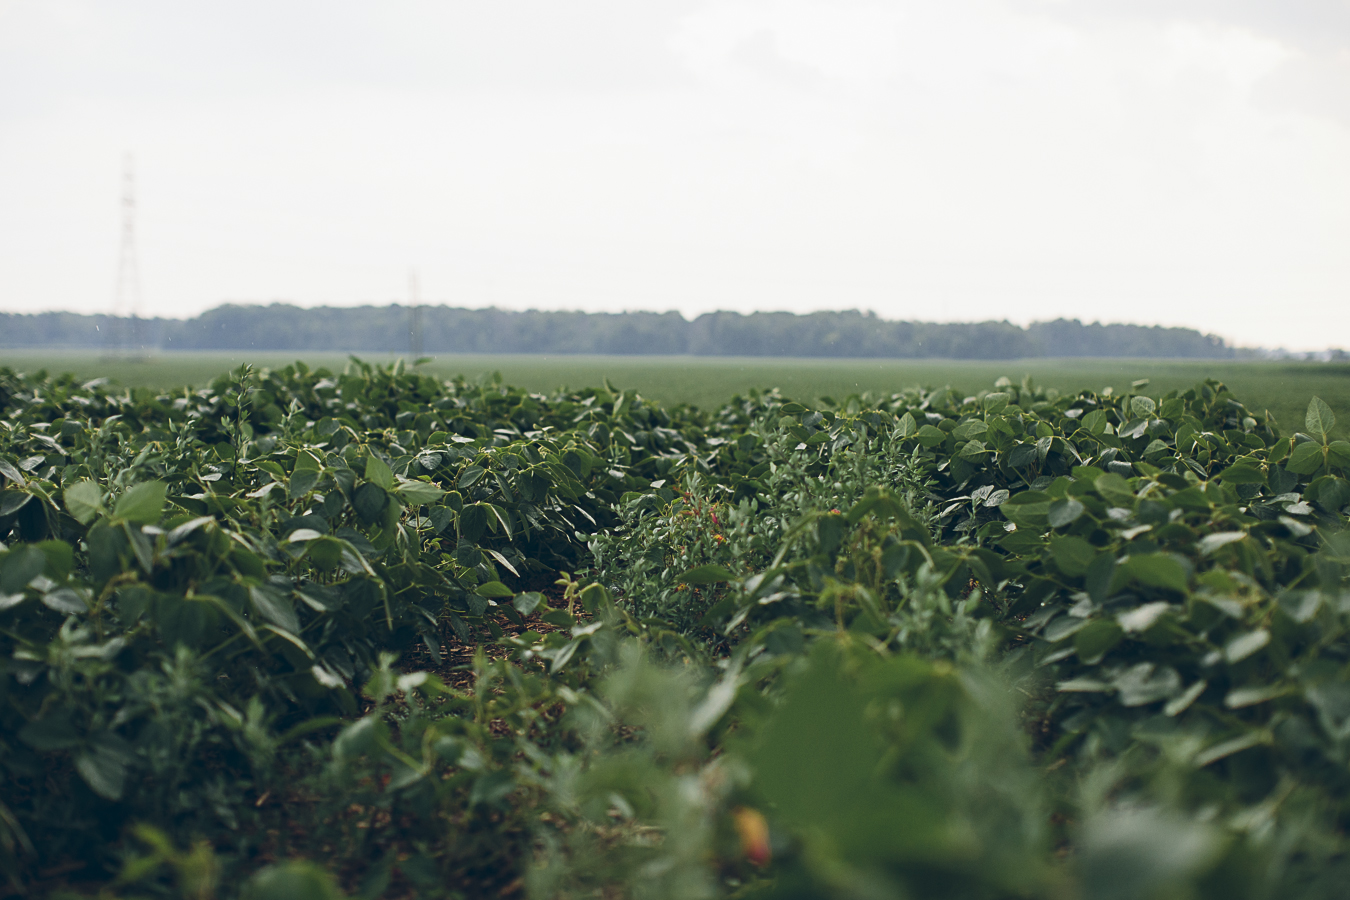 Soy fields in Southern Ontario